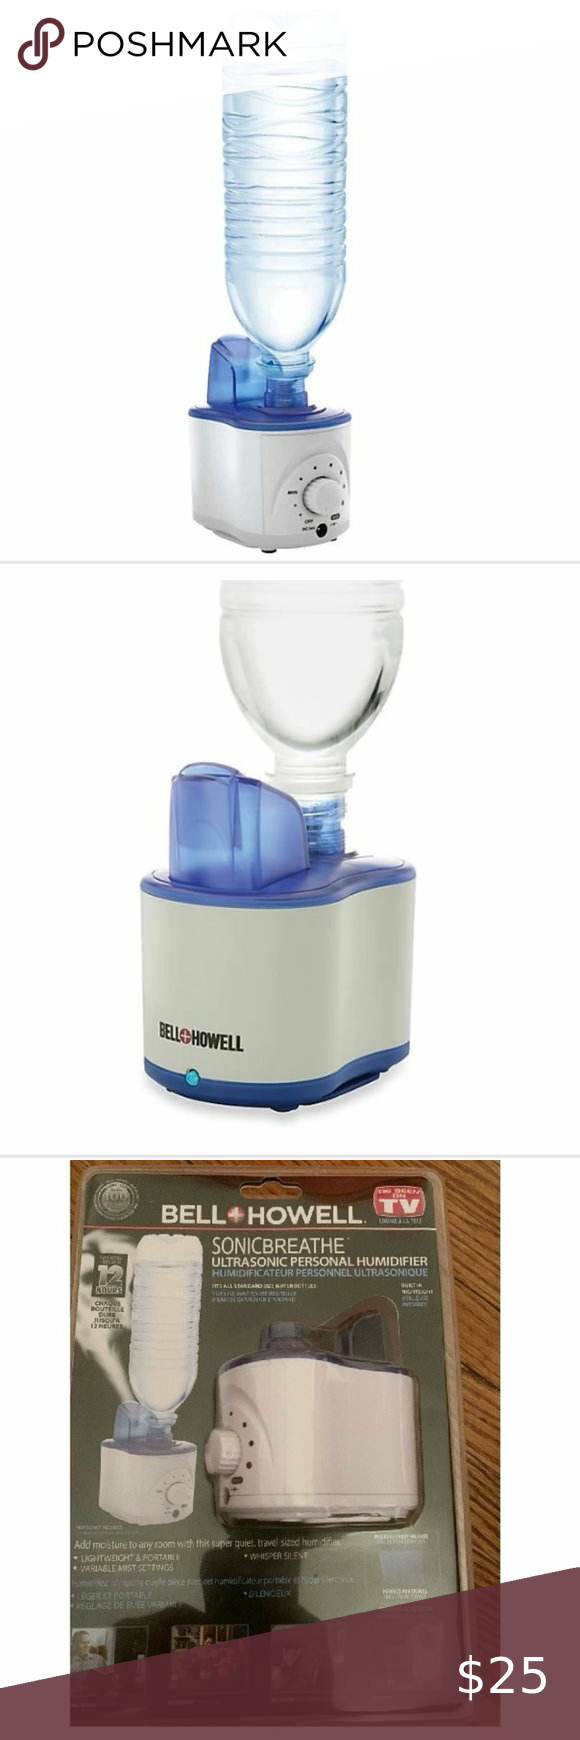 LOOK! New Personal Portable Humidifier! in 2020 Portable